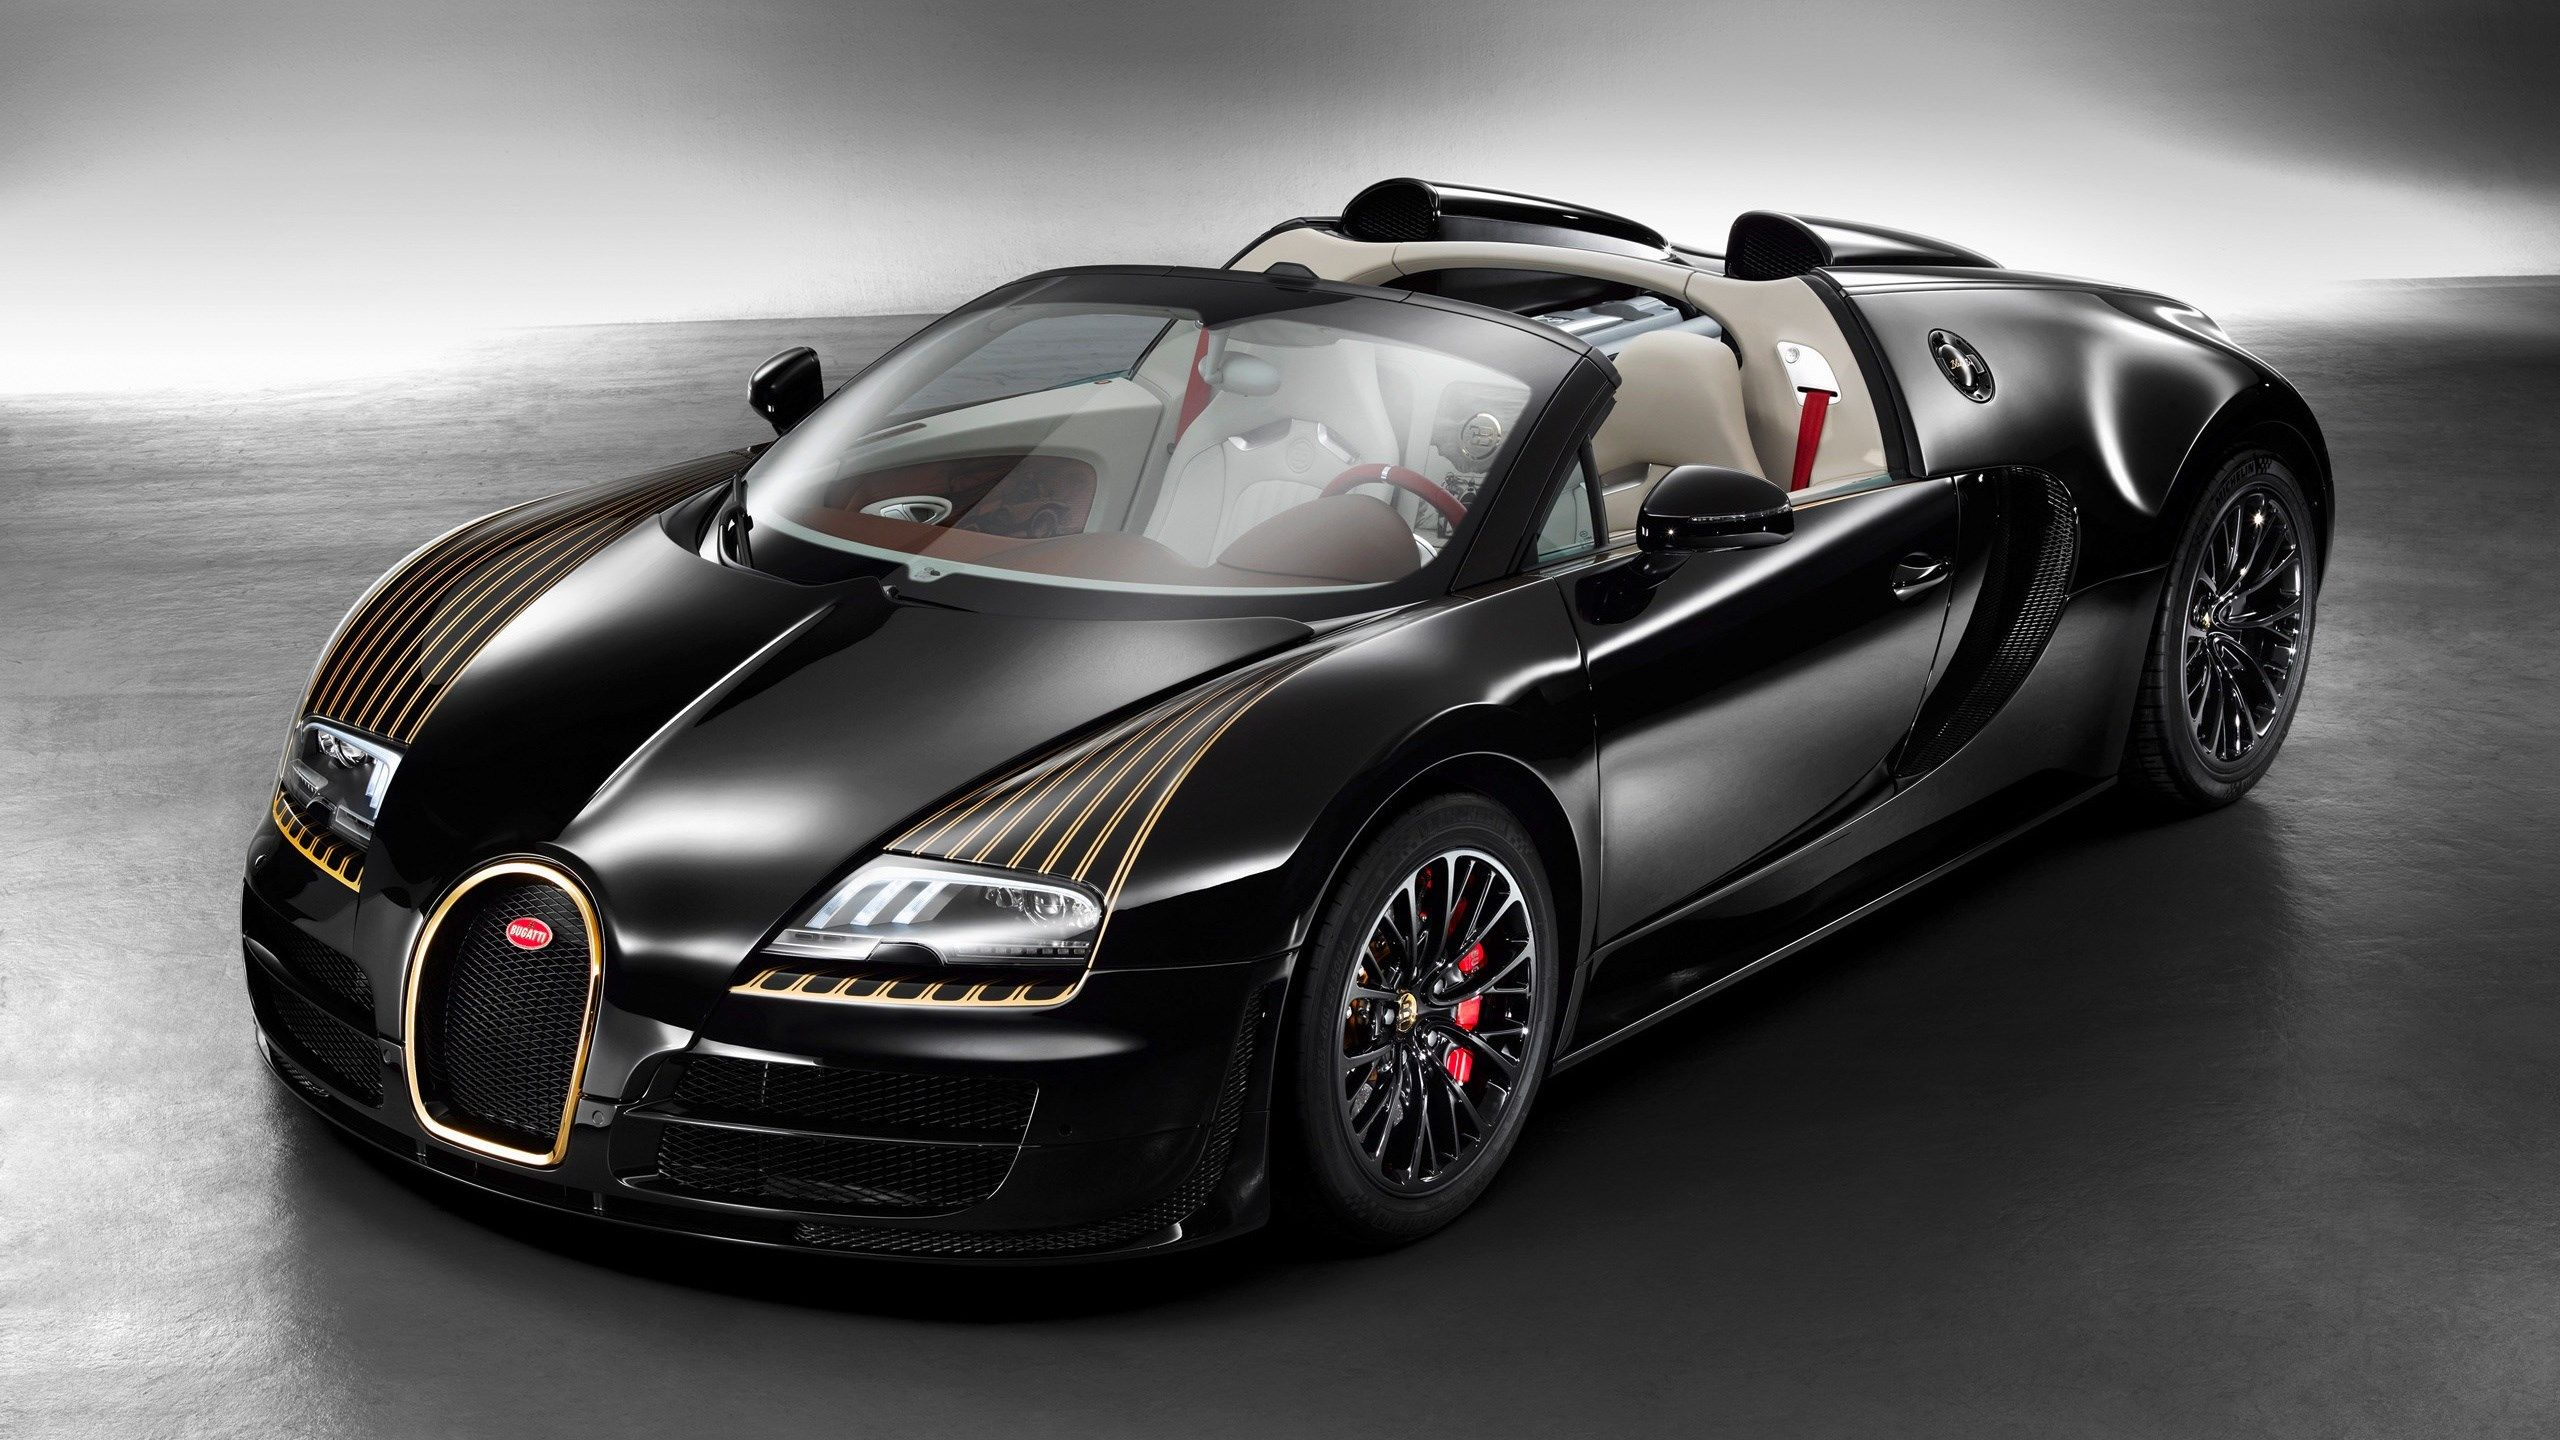 Bugatti Veyron Grand Sport Vitesse Wallpaper Pack 1080p Hd